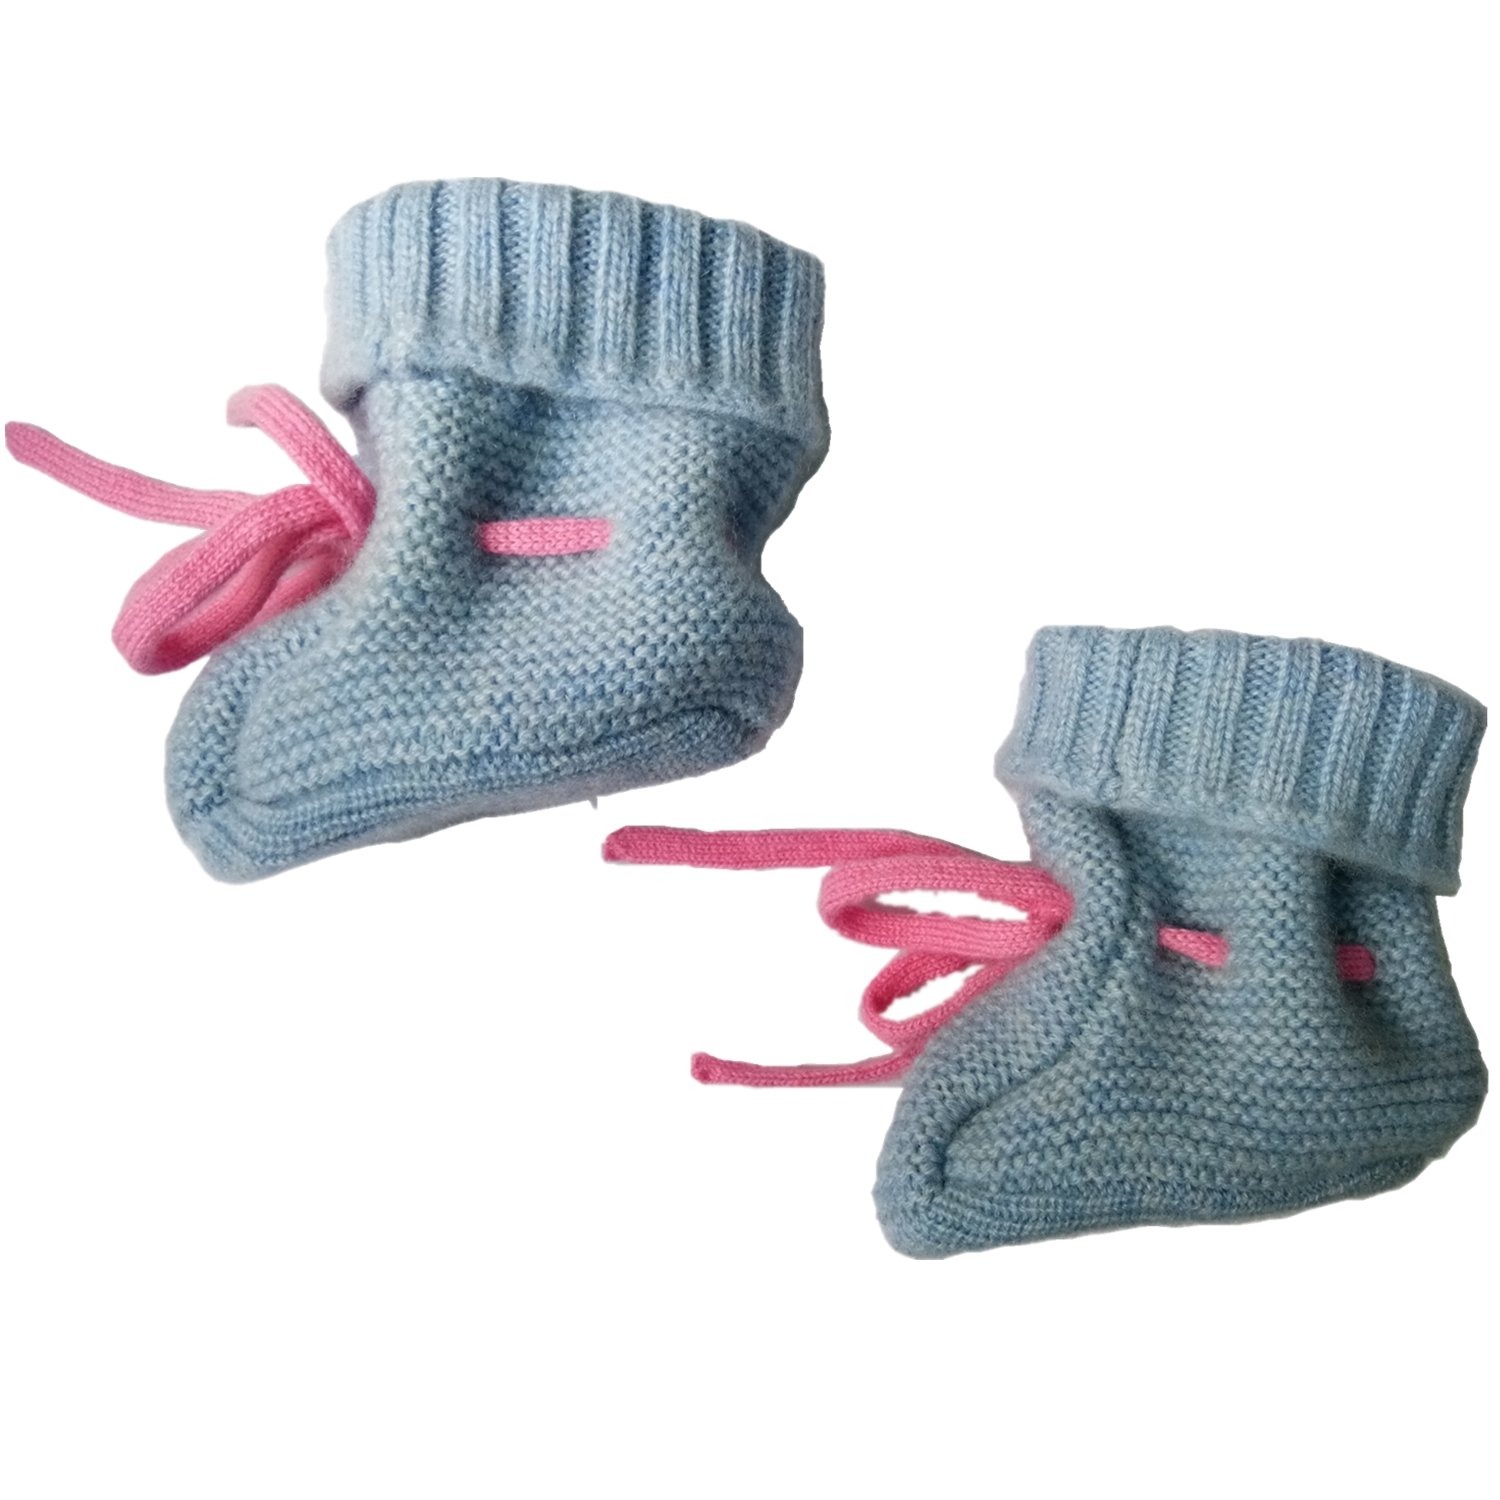 DILLY FASHION Unisex Baby Knitted 100% Cashmere Baby Socks With Tie (Blue) by DILLY FASHION